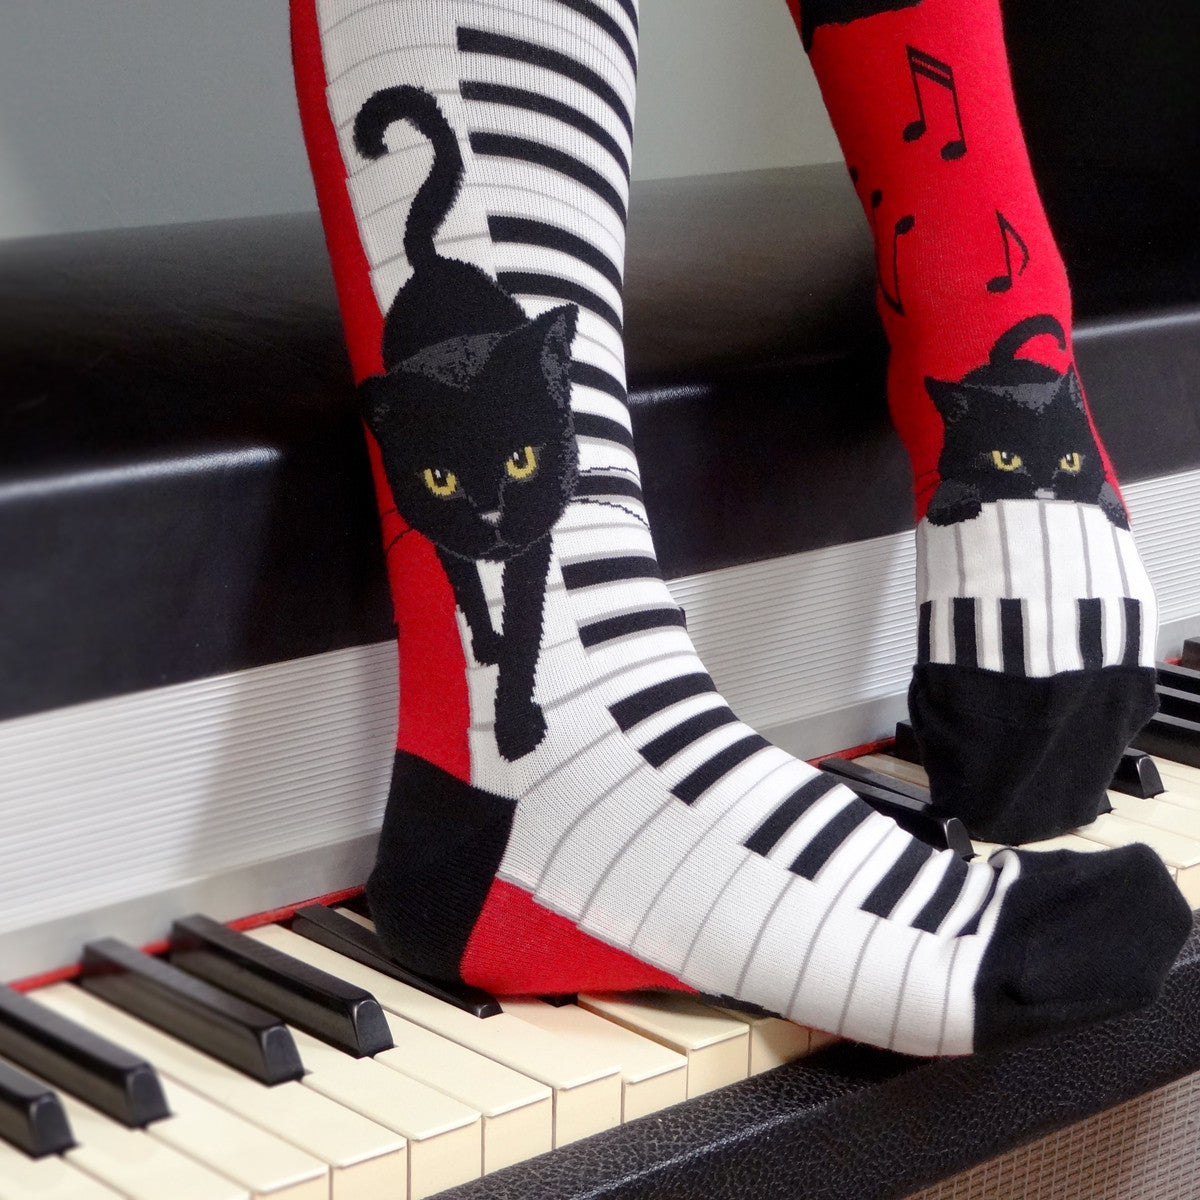 A black cat walks down piano keys while other cats play with music notes on these red knee socks for the music lover designed by sock brand ModSocks.